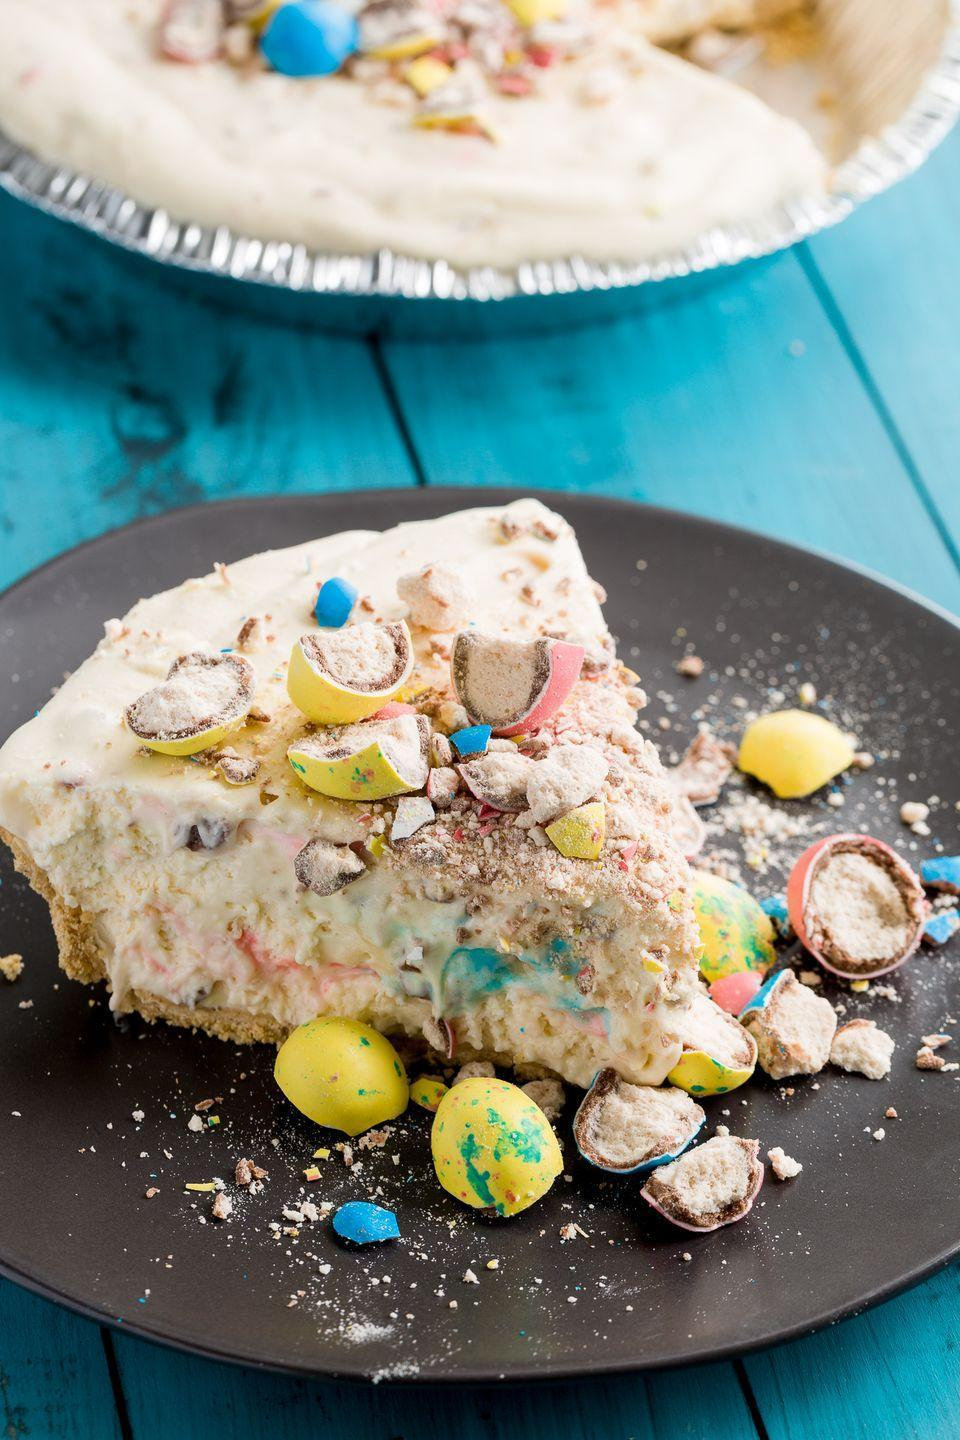 """<p>'Tis the season for Robin's Eggs, and this no-bake cheesecake is the perfect way to celebrate.</p><p>Get the recipe from <a href=""""https://www.delish.com/cooking/recipe-ideas/recipes/a46481/robins-egg-no-bake-cheesecake-recipe/"""" rel=""""nofollow noopener"""" target=""""_blank"""" data-ylk=""""slk:Delish"""" class=""""link rapid-noclick-resp"""">Delish</a>. </p>"""